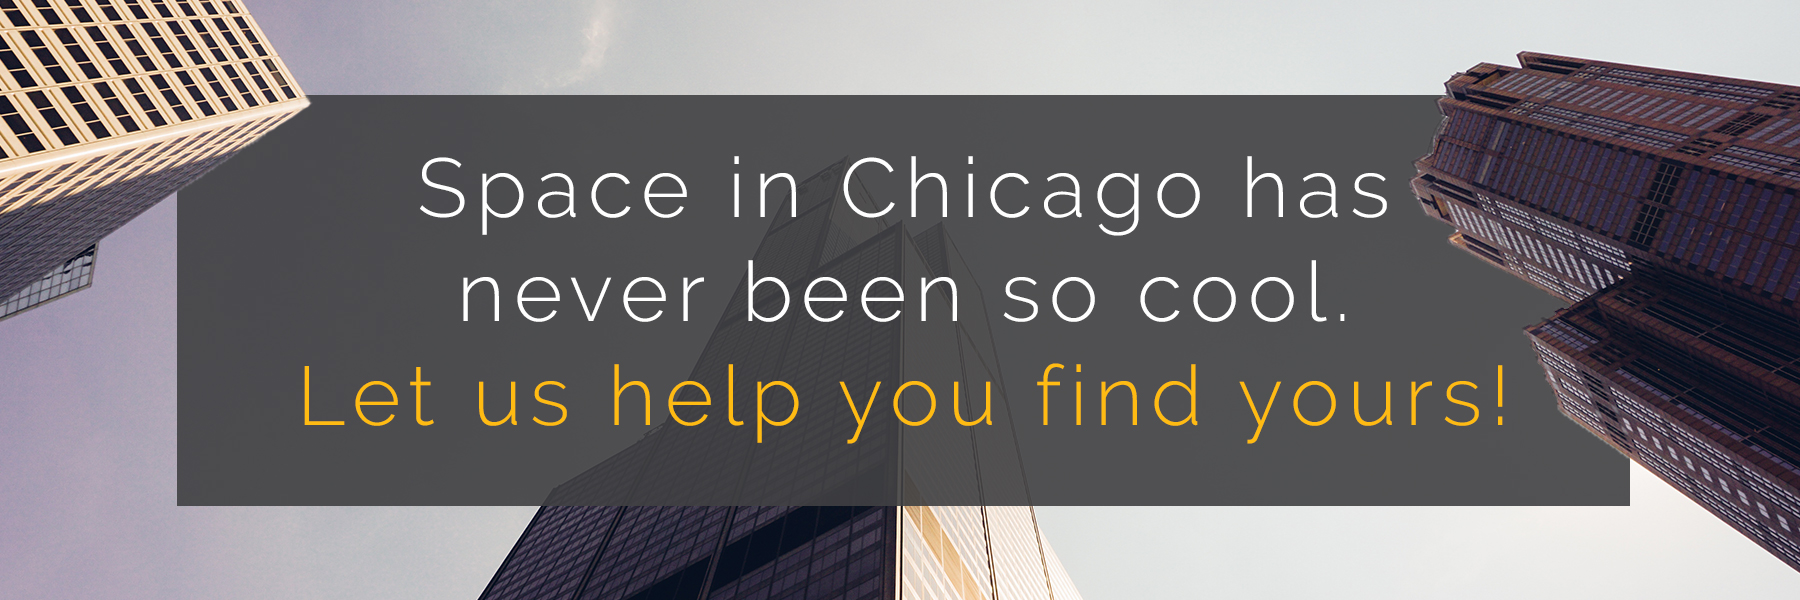 33 Realty will help you find your Chicago home.